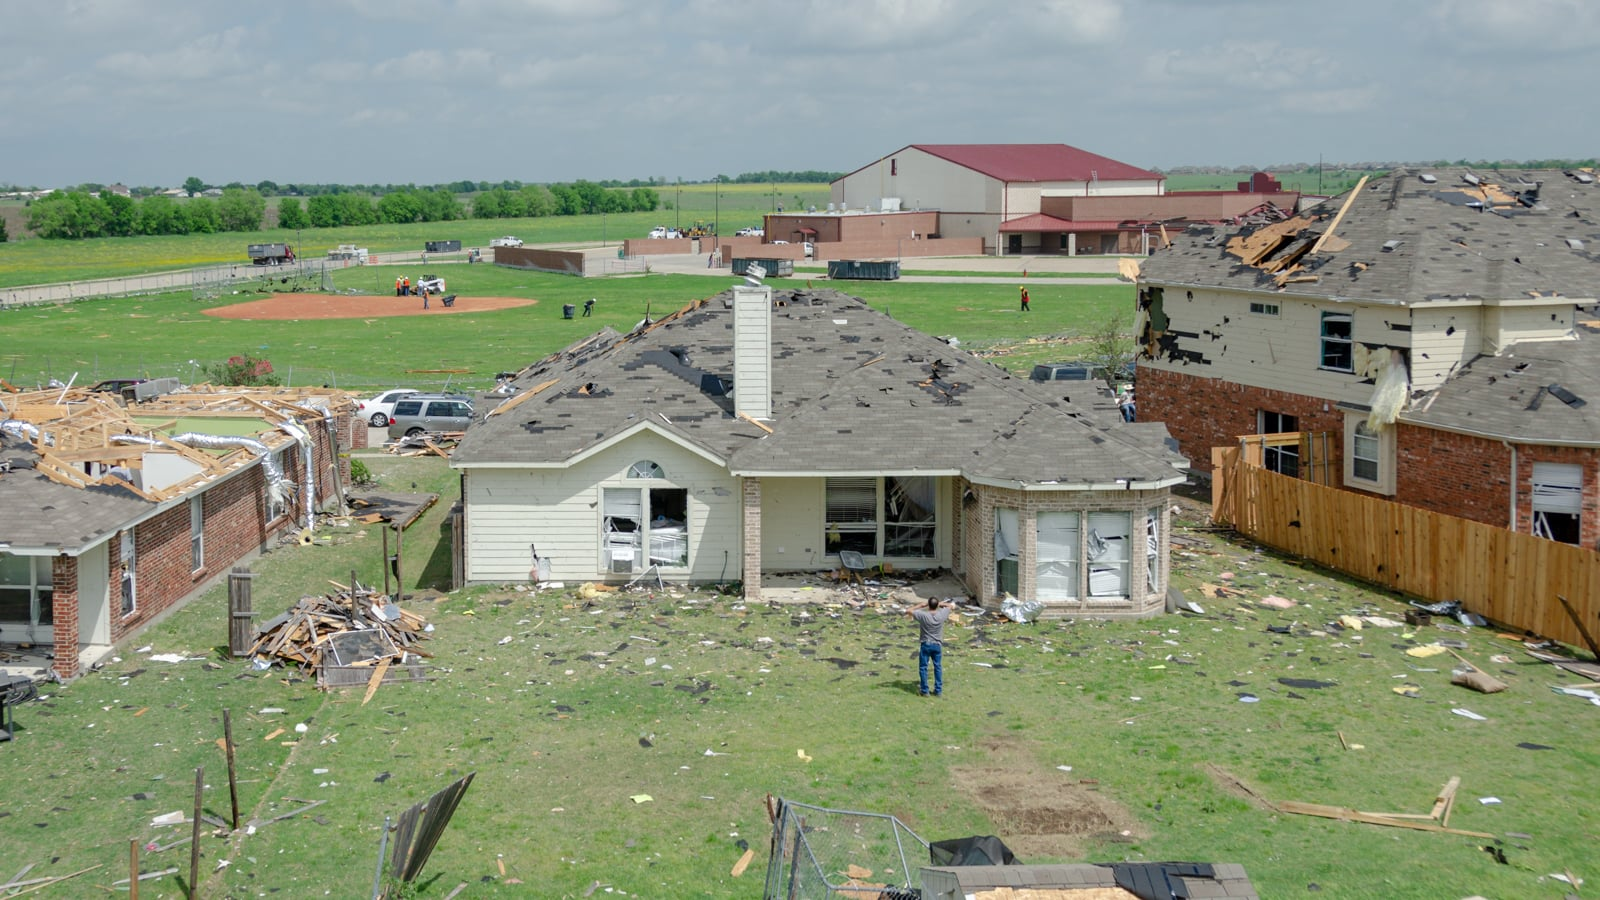 A house in the Diamond Creek subdivision damaged by the tornado